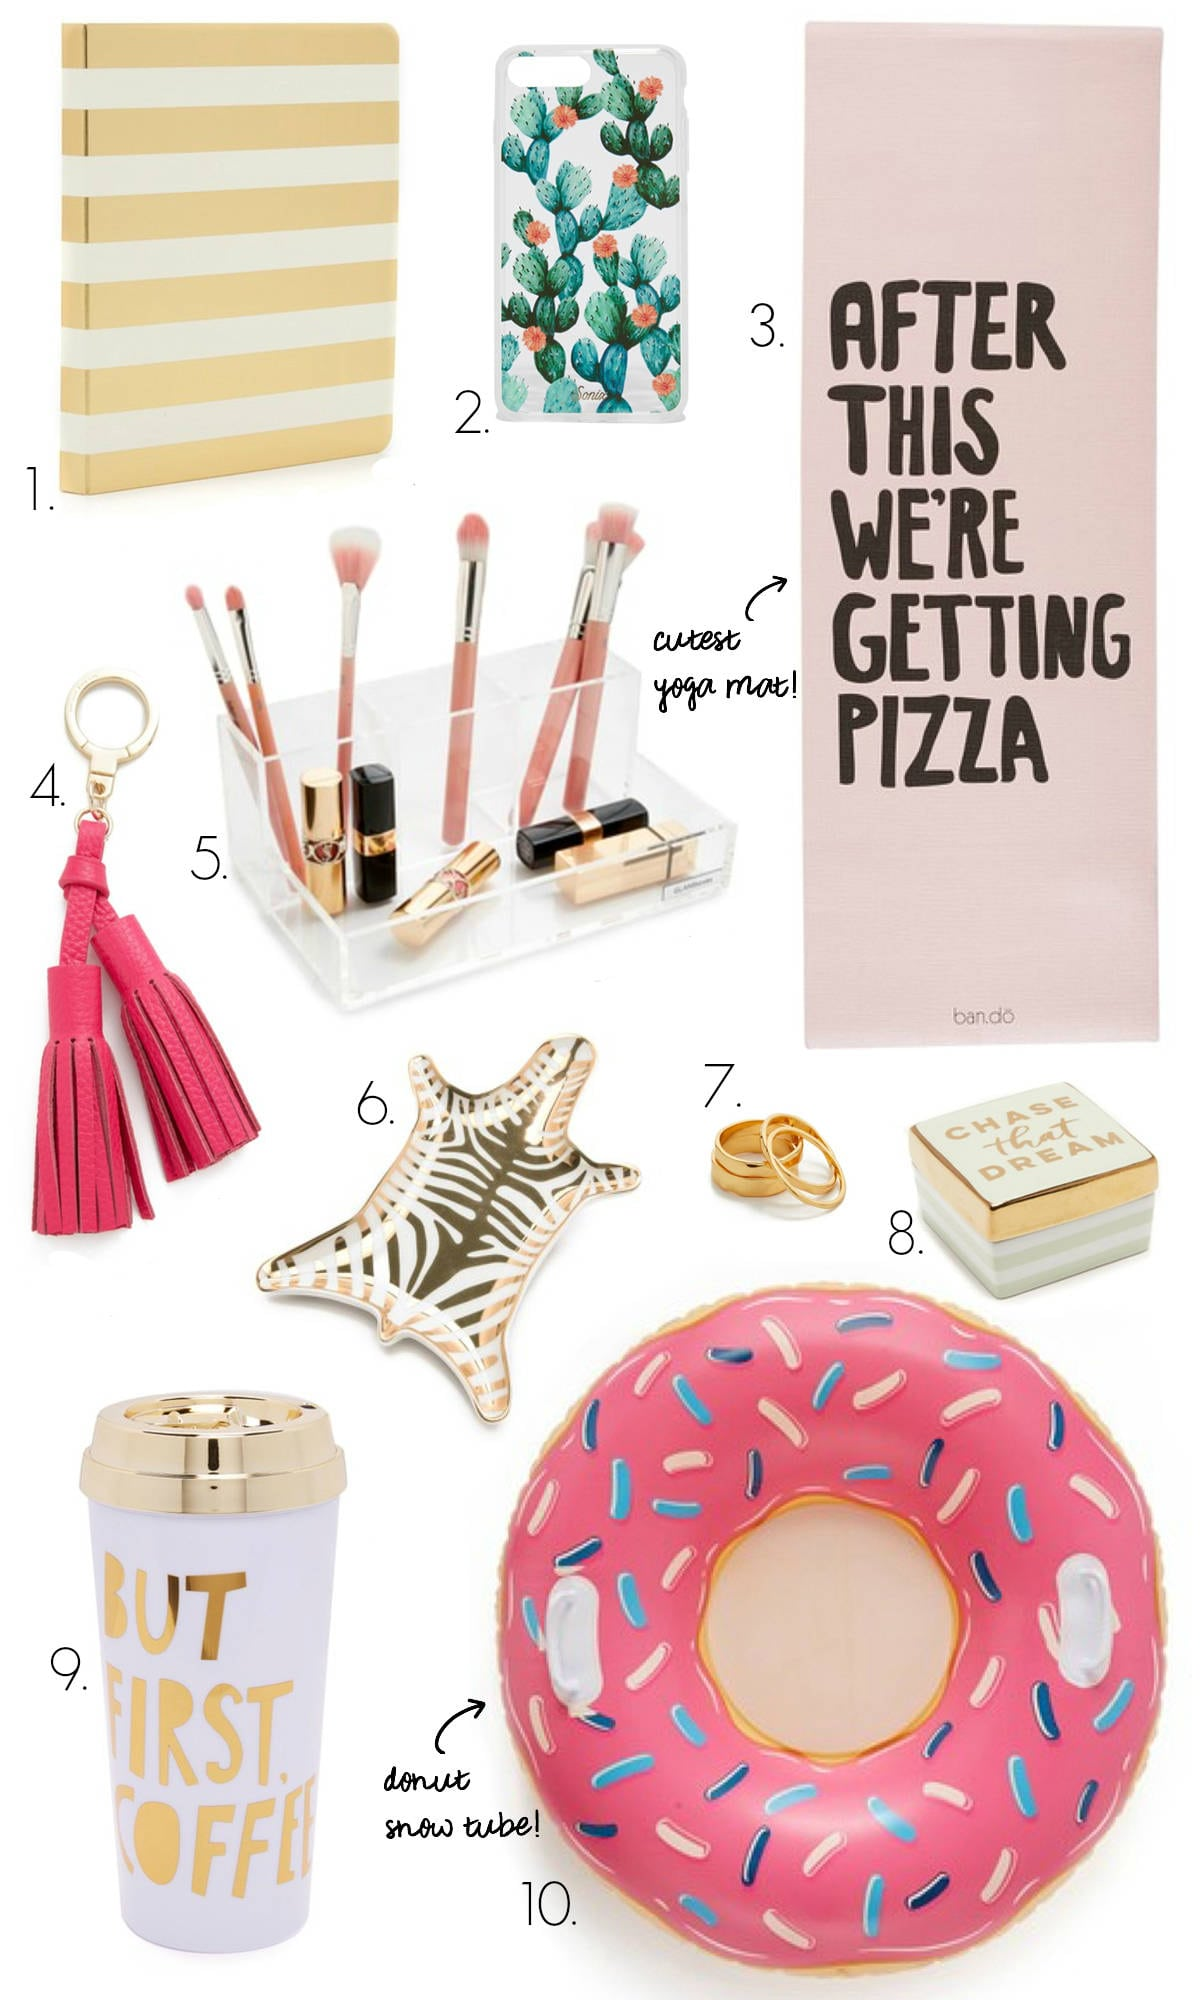 Gifts for your BFF | gifts your girlfriend will love | but first coffee tumbler | after this we're getting pizza yoga mat | makeup organizer | zebra jewelry dish | acrylic makeup organizer | Mash Elle